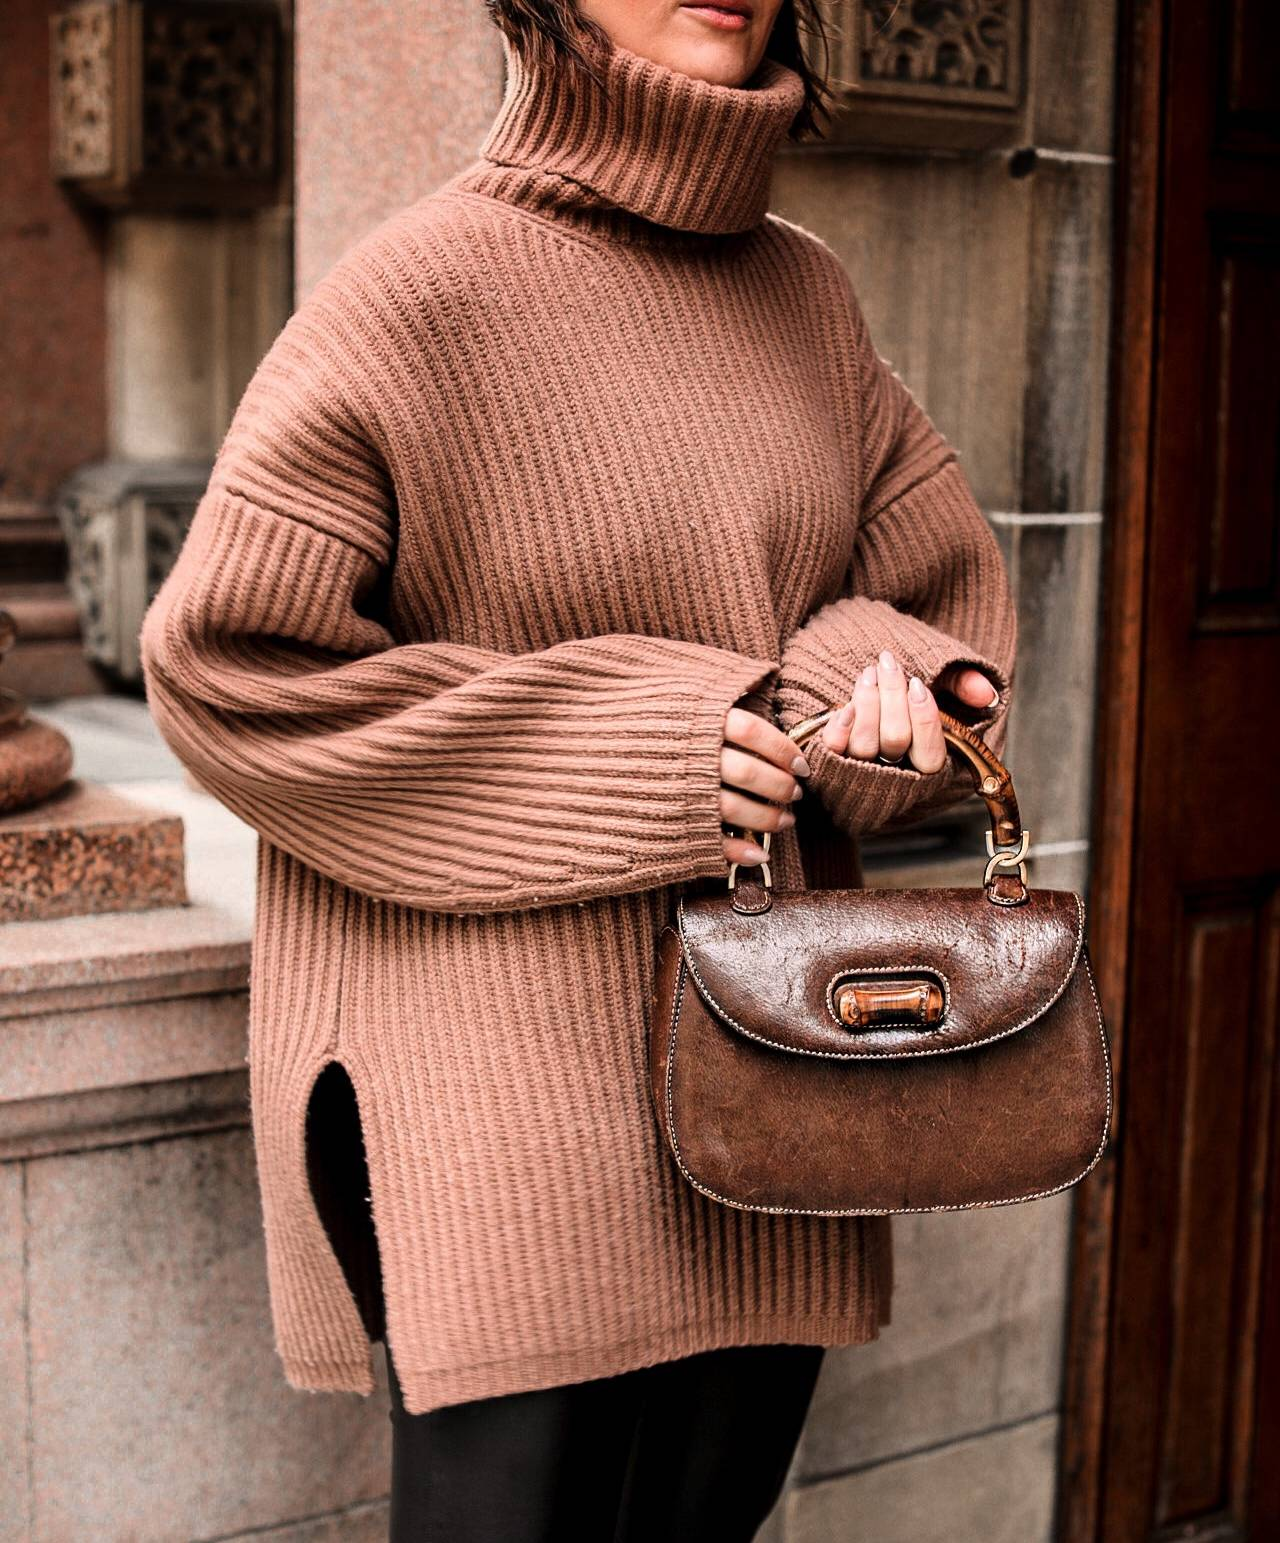 acne-studios-knit-and-vintage-gucci-bag-styling-LAFOTKA